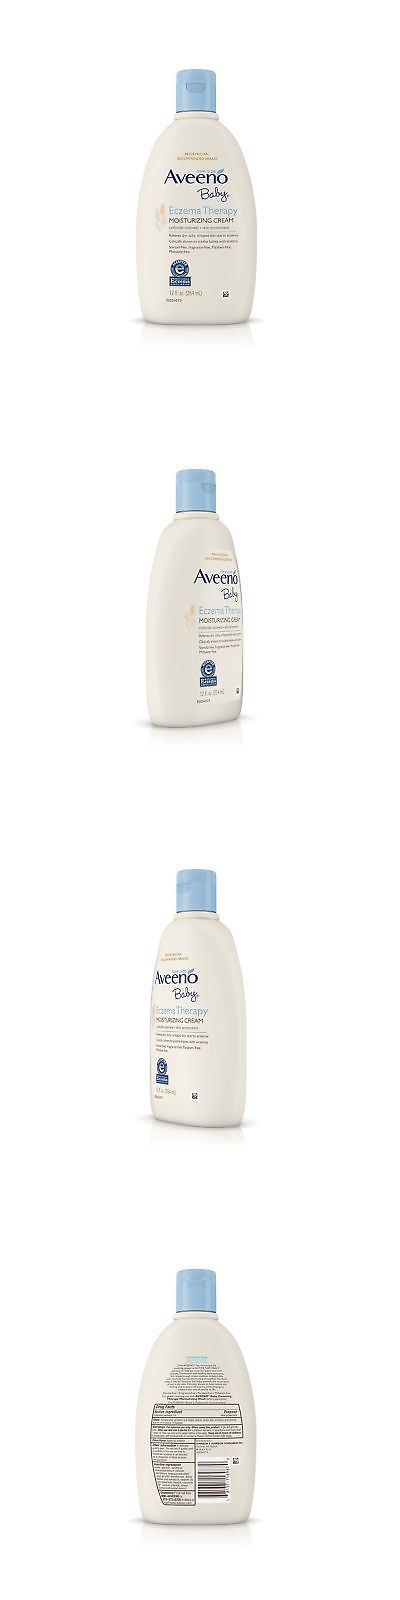 Skin Care 20398: Aveeno Baby Eczema Therapy Moisturizing Cream 12 Fl. Oz 12 Ounce -> BUY IT NOW ONLY: $32.77 on eBay!